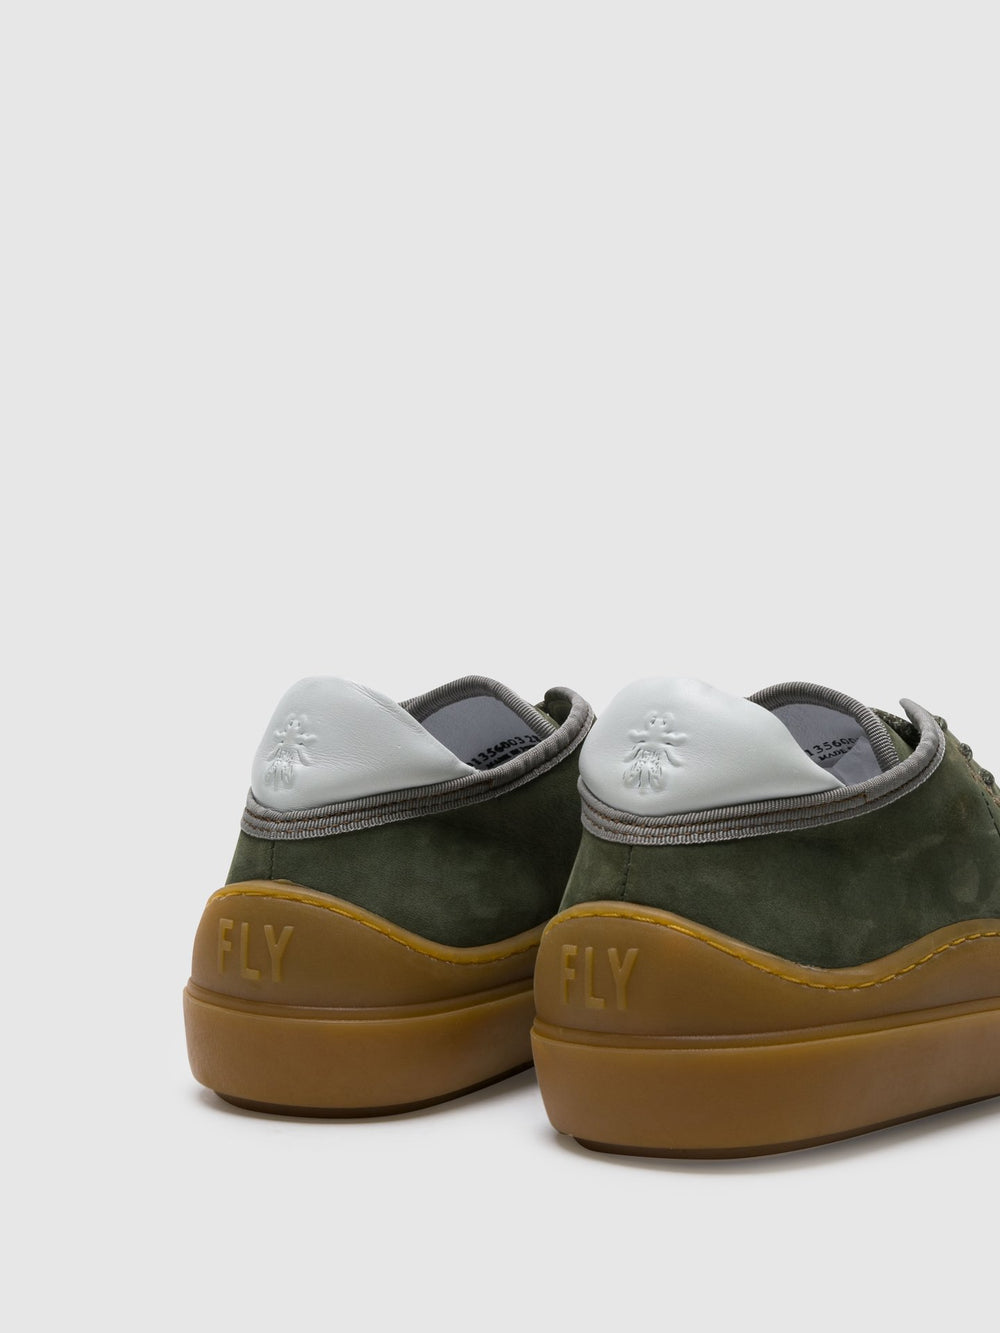 Lace-up Trainers SUMA356FLY MILITAR/OFFWHITE (CAMEL SOLE)